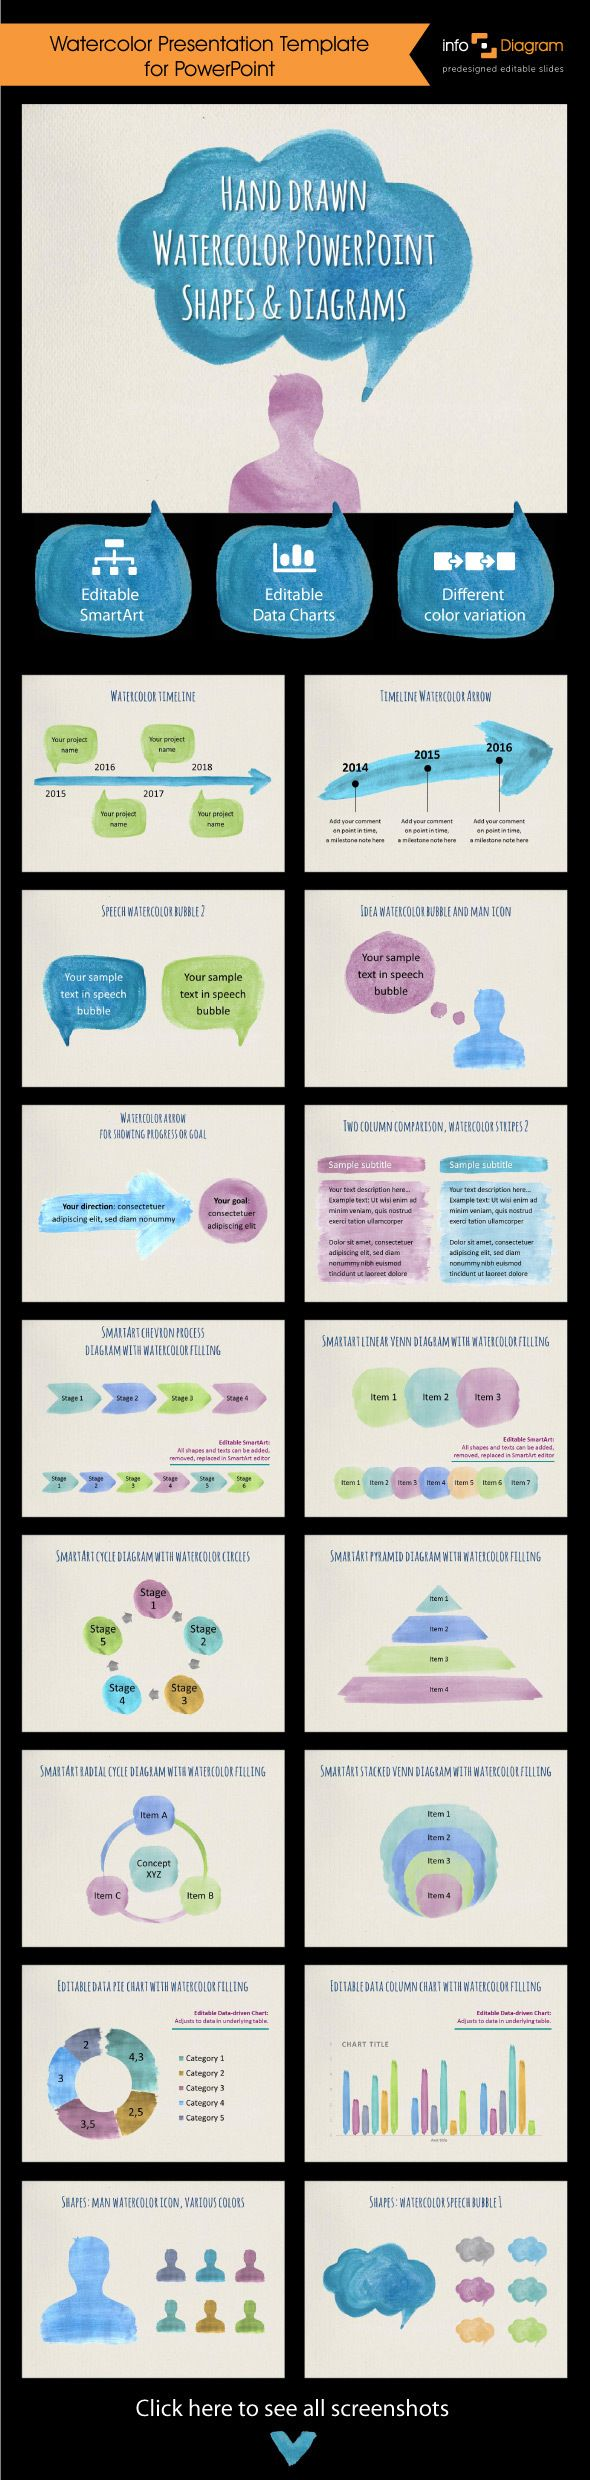 Watercolor PowerPoint Presentation for Business